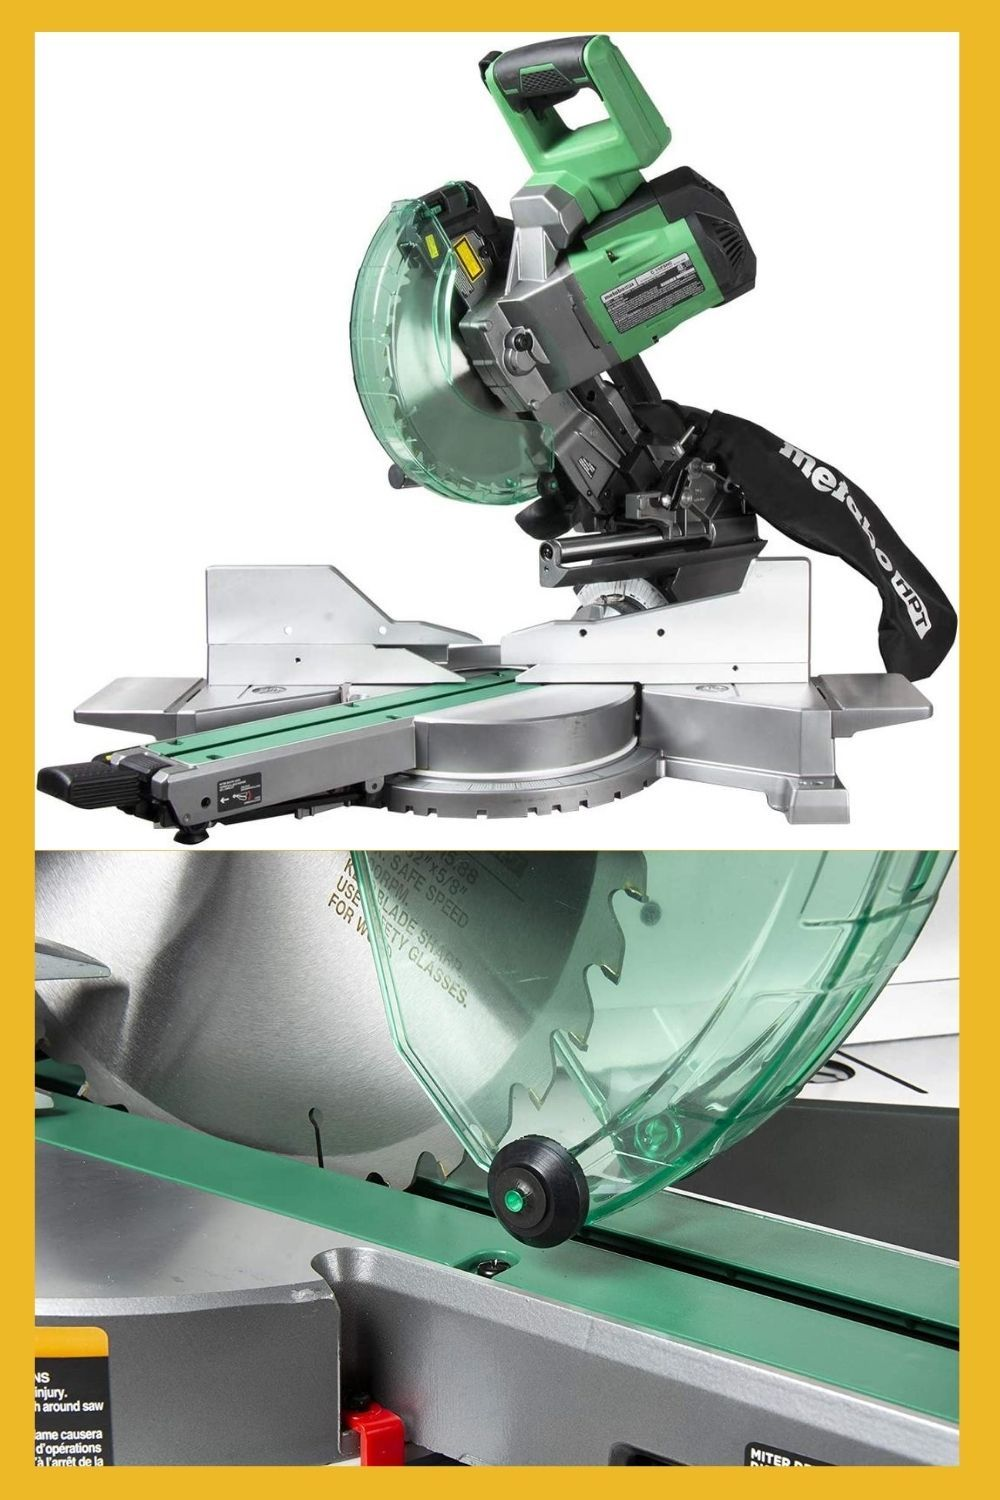 Metabo Hpt 10 Inch Sliding Miter Saw Dual Bevel Laser Marker C10fshct In 2020 Miter Saw Homeowners Guide Power Saws